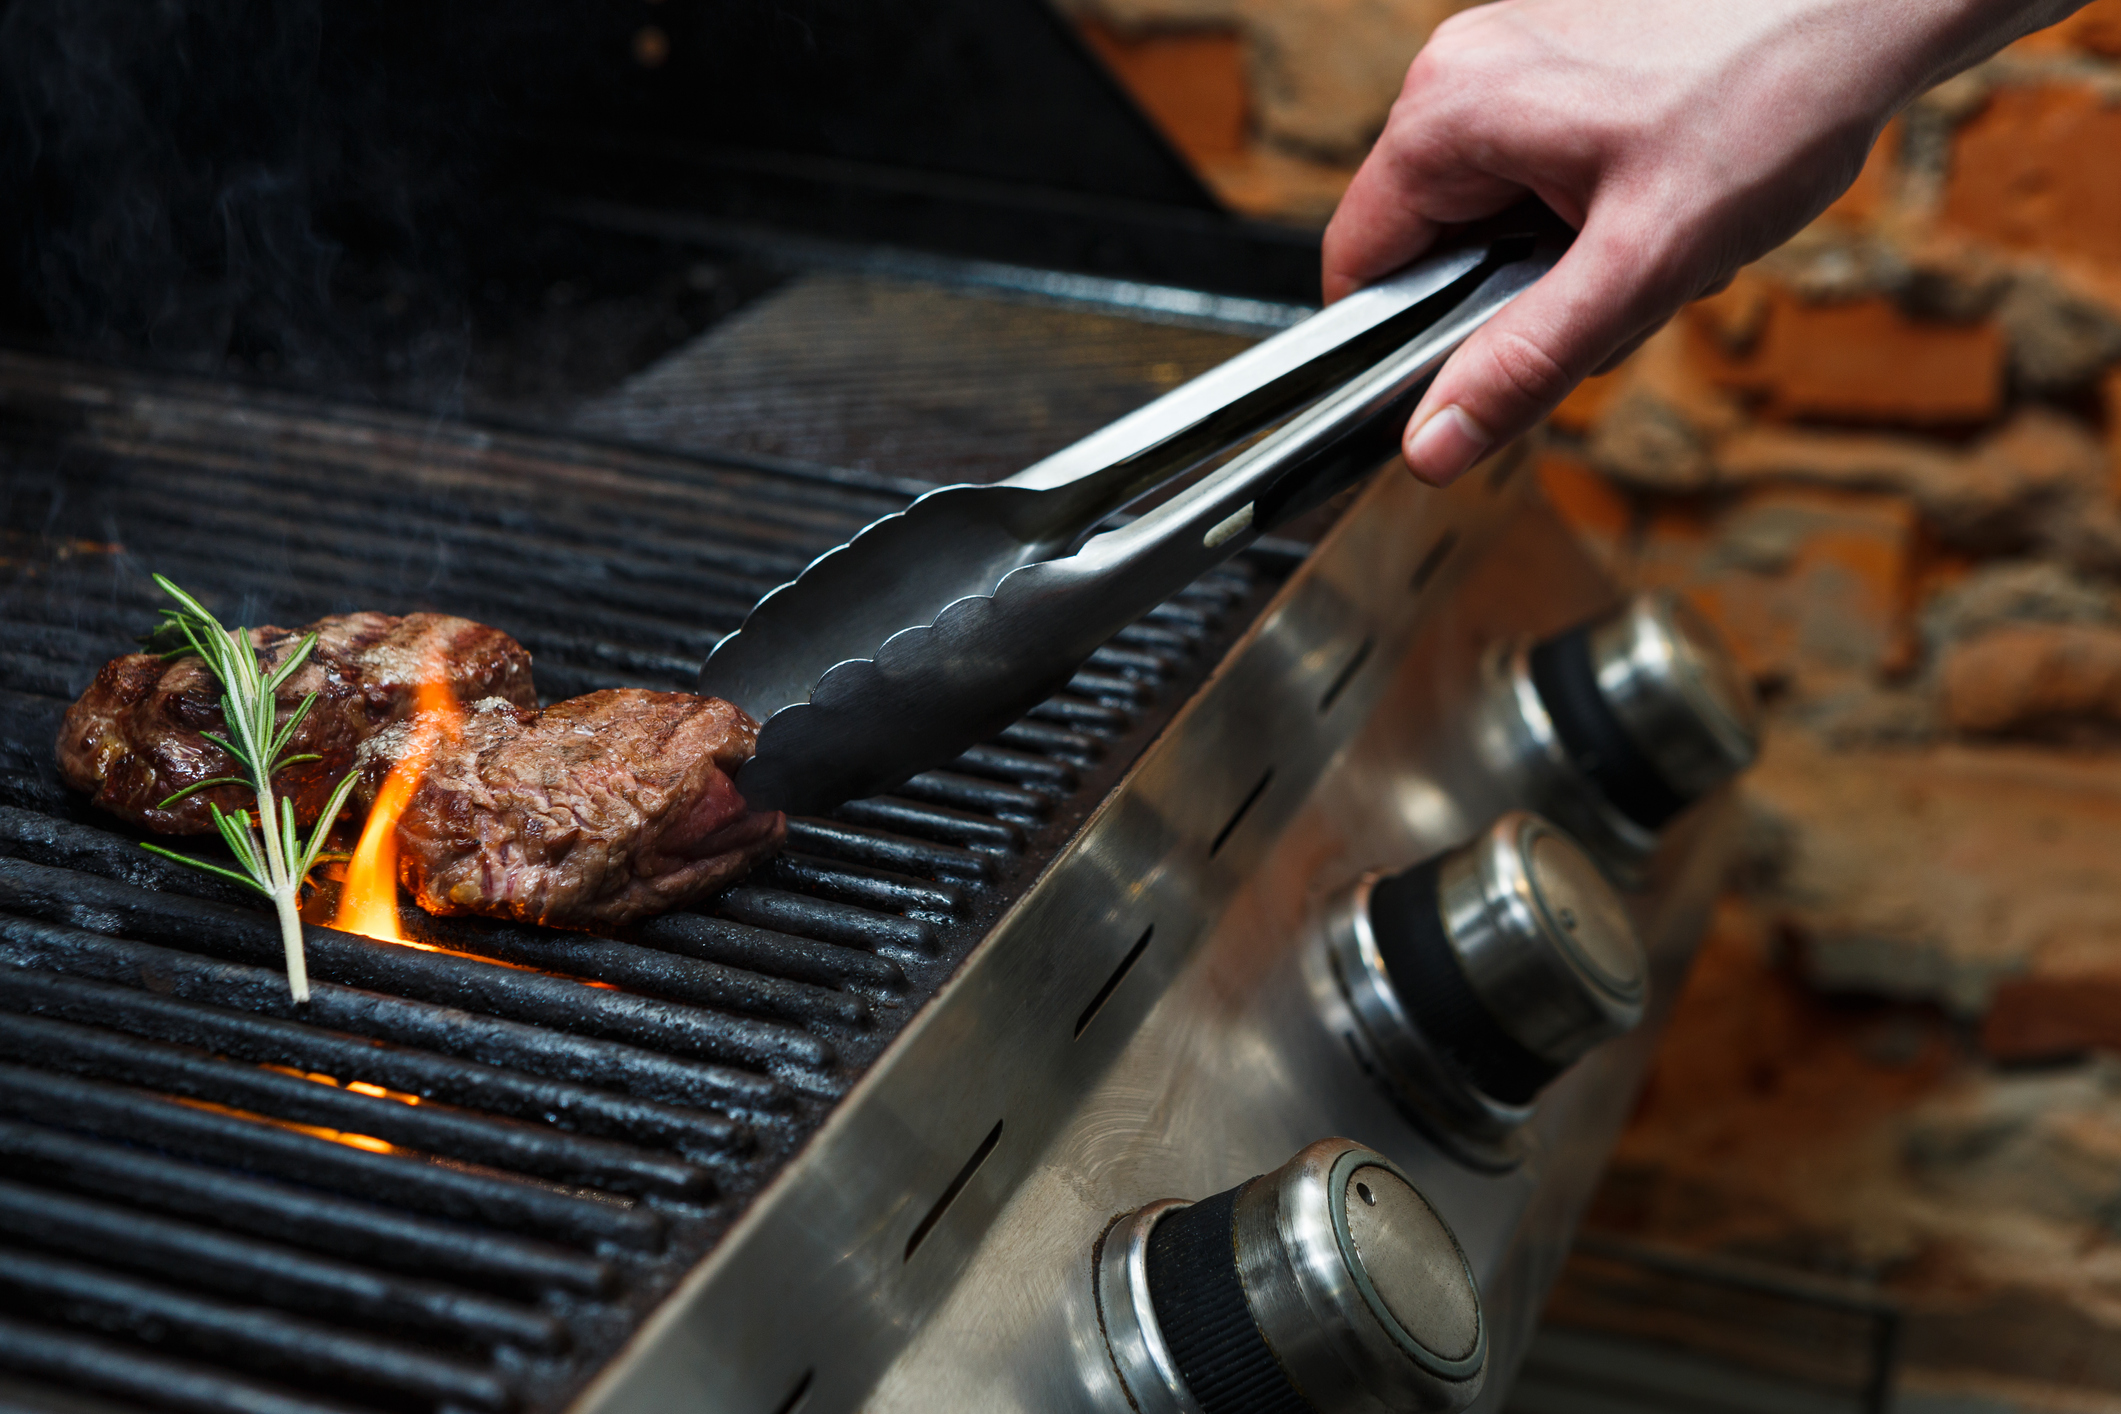 Person grilling meat on an outdoor grill